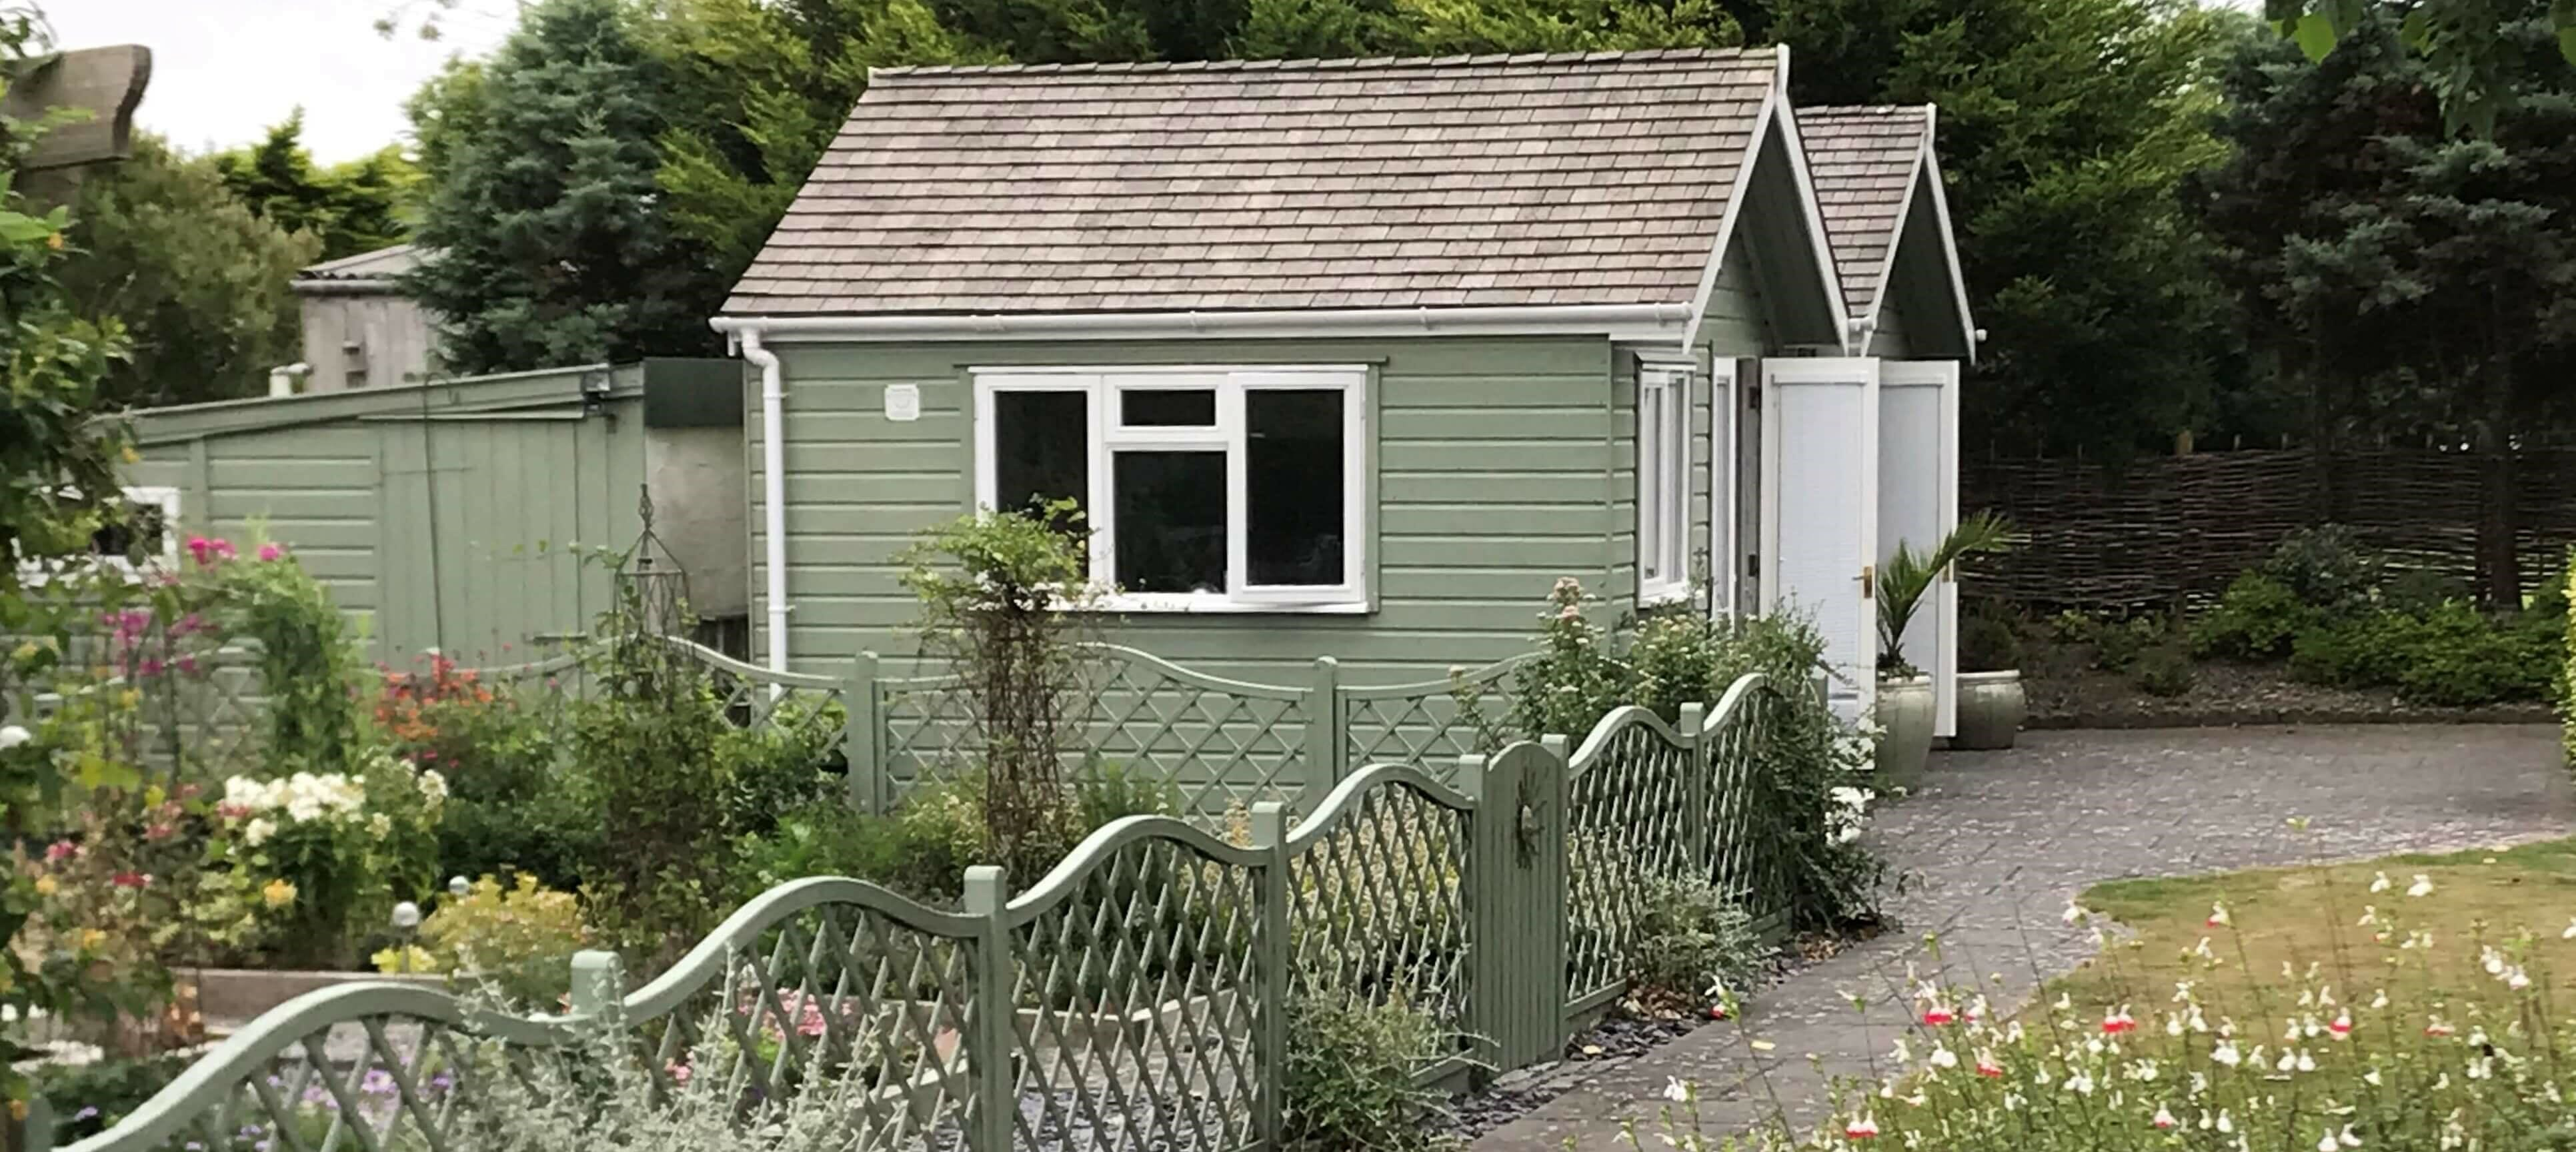 Twin painted garden offices